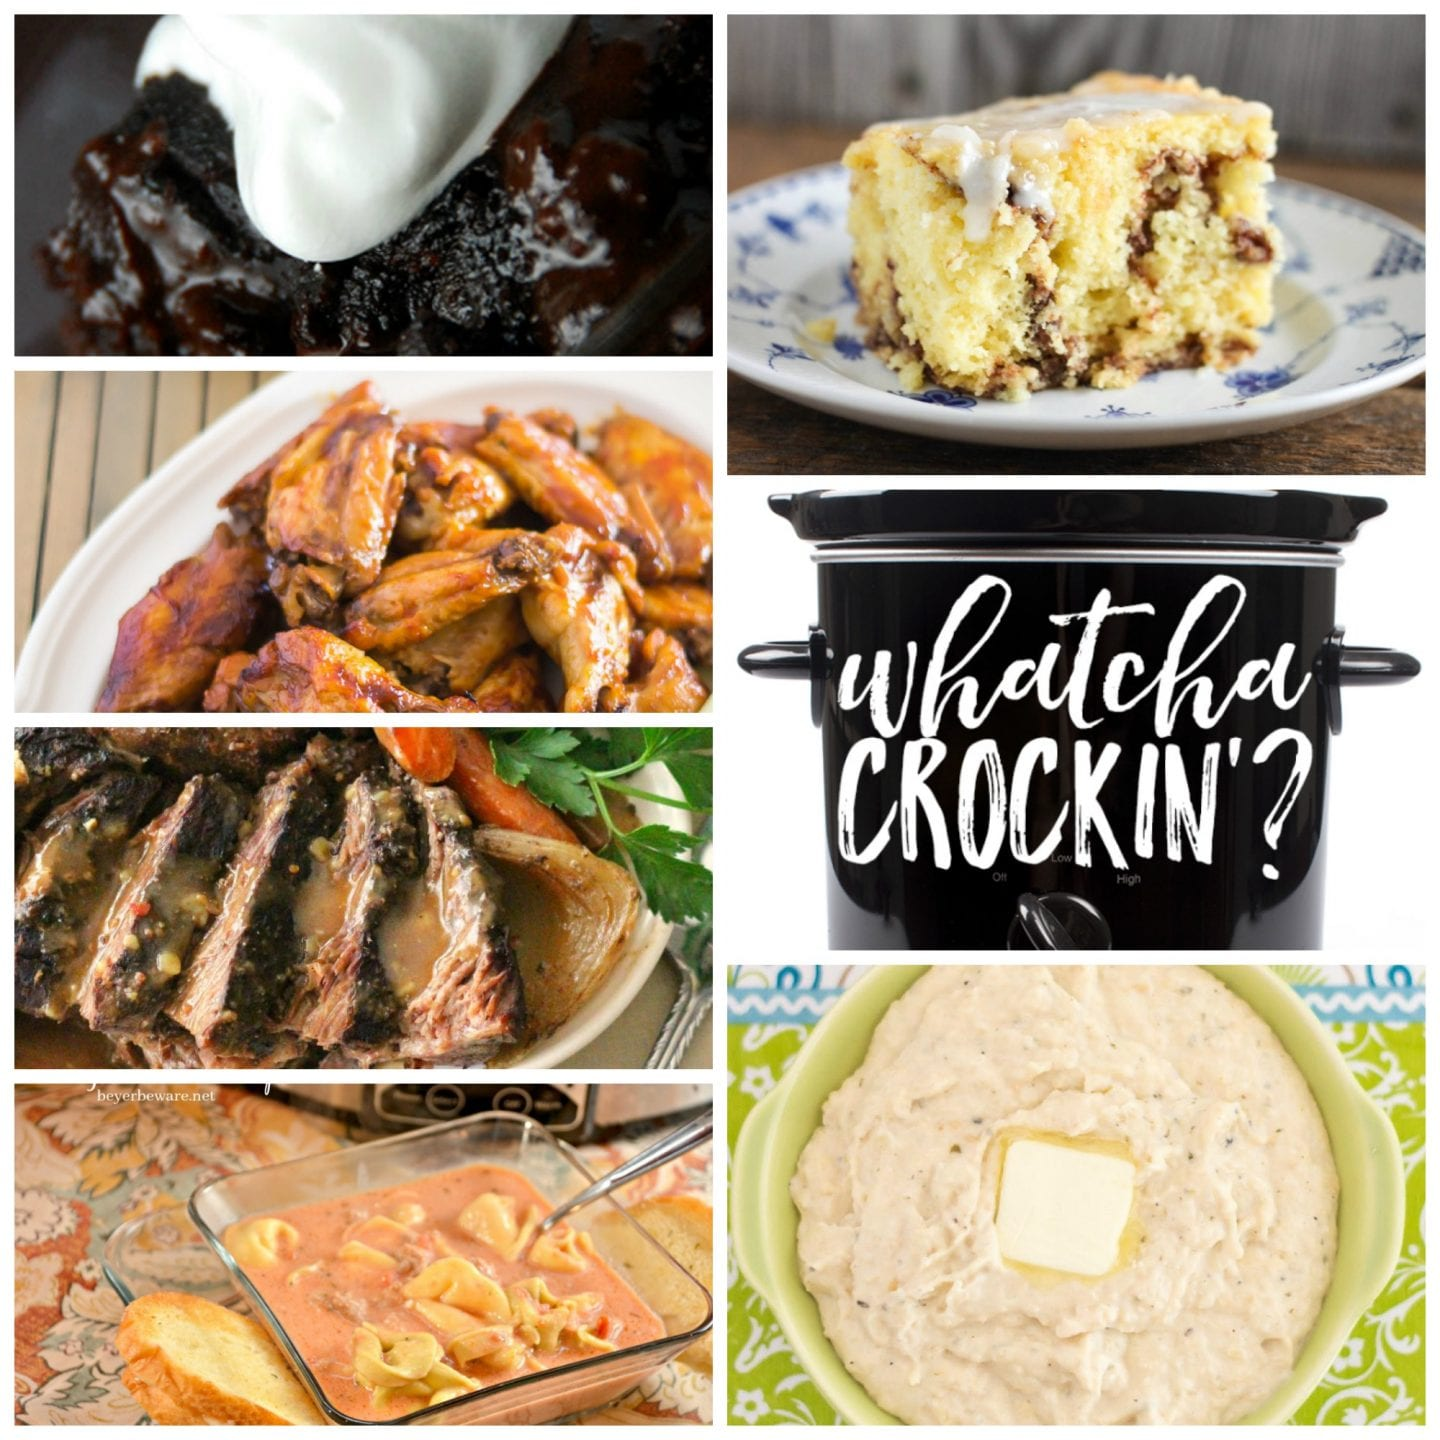 This week's Whatcha Crockin' crock pot recipes include Crock Pot Coffee Cake, Crock Pot Cheesy Buttermilk Mashed Cauliflower, Coca Cola Pot Roast, Crock Pot Hot Fudge Brownies, Crock Pot Sausage Tortellini Soup, Crock Pot Honey BBQ Buffalo Chicken Wings and much more!